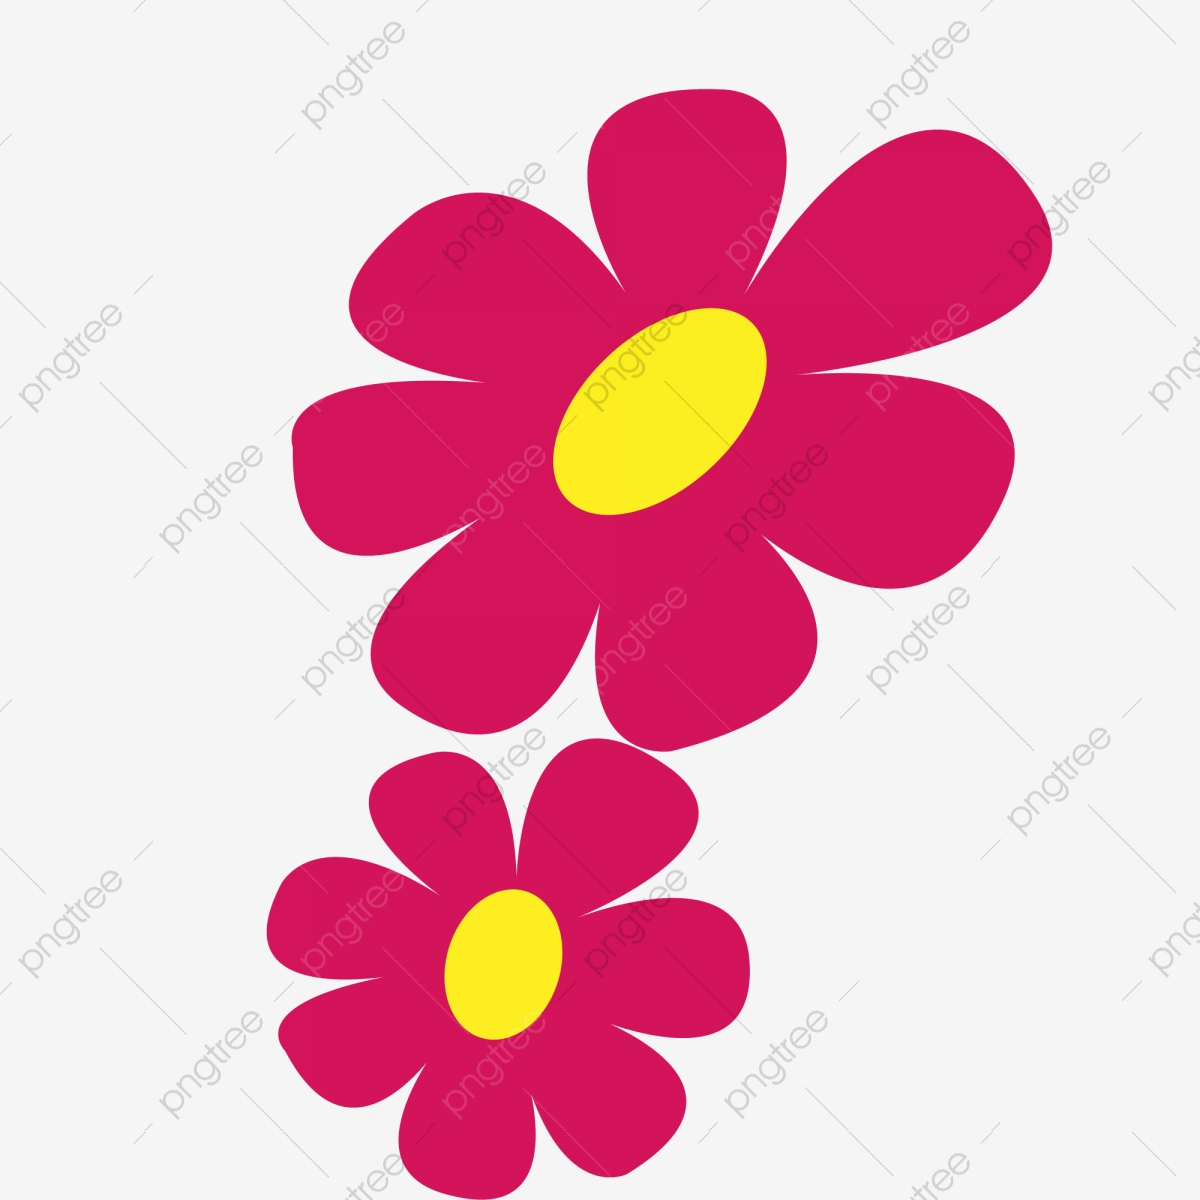 Two Red Cartoon Flowers Flowers Cartoon Flowers Red Flowers Png Transparent Clipart Image And Psd File For Free Download